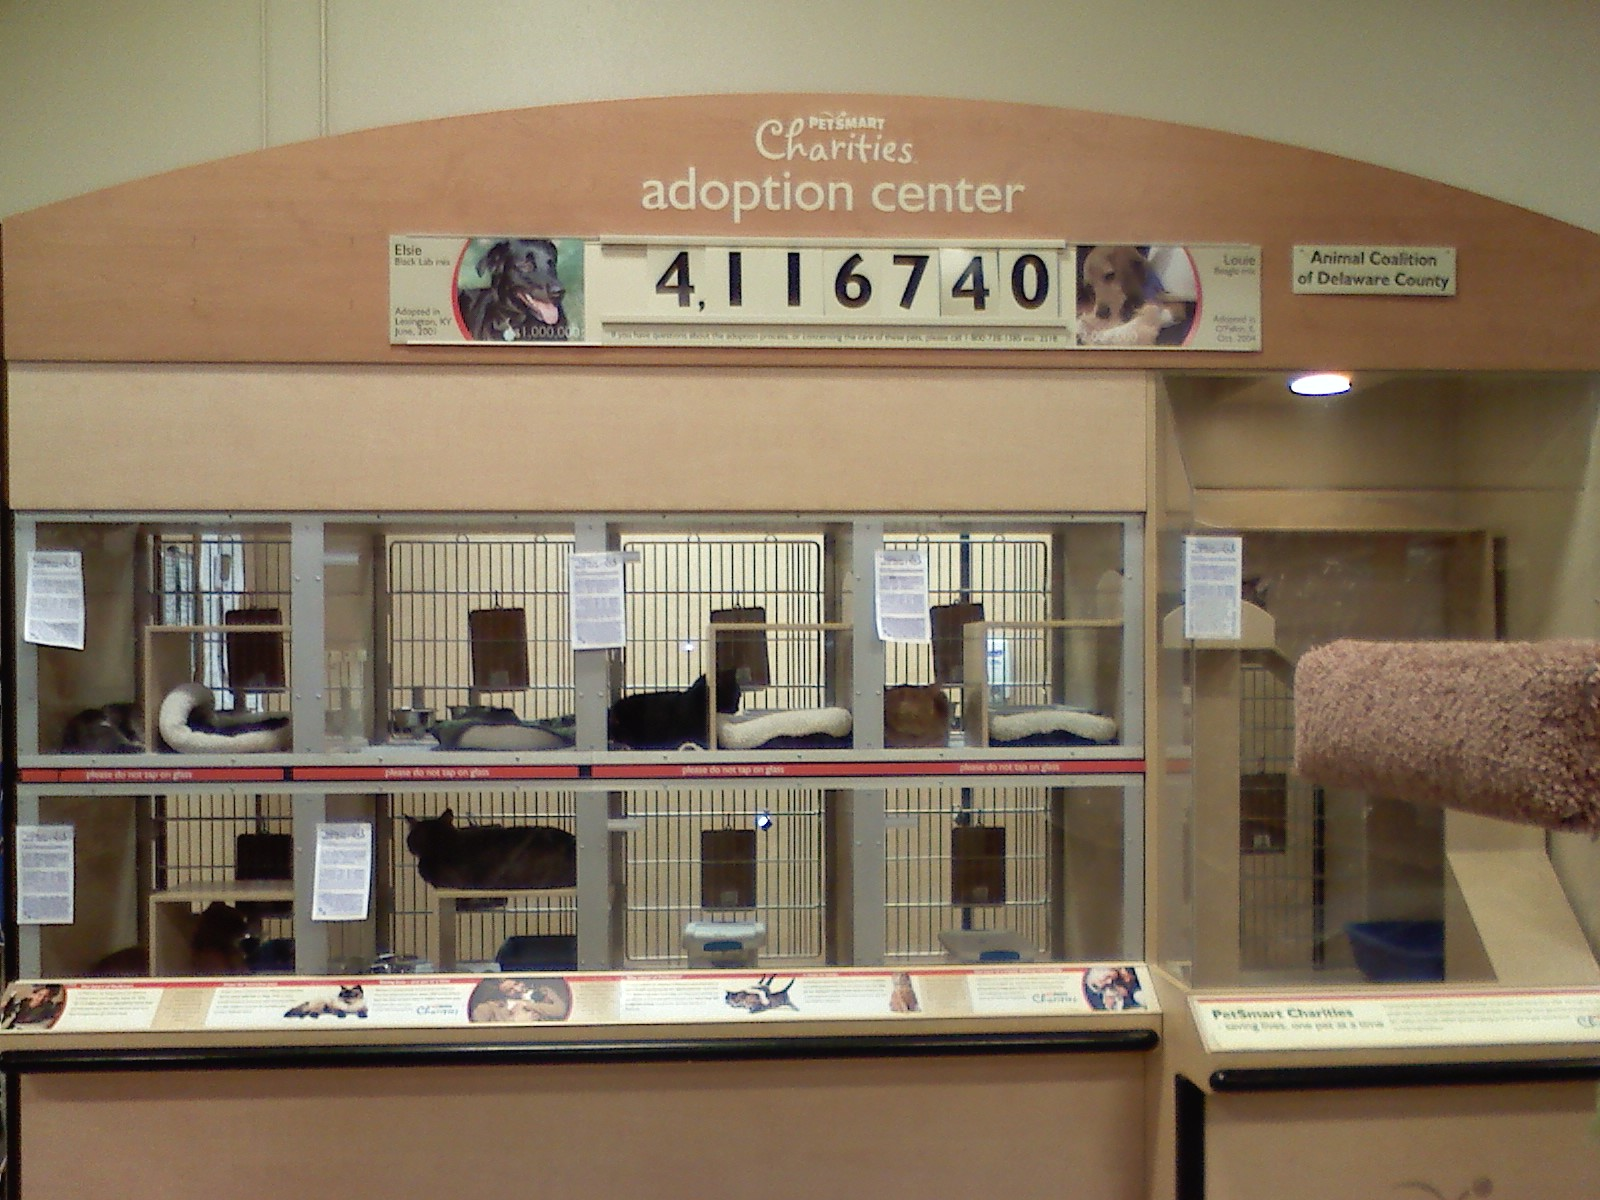 AdoptionCenter2010